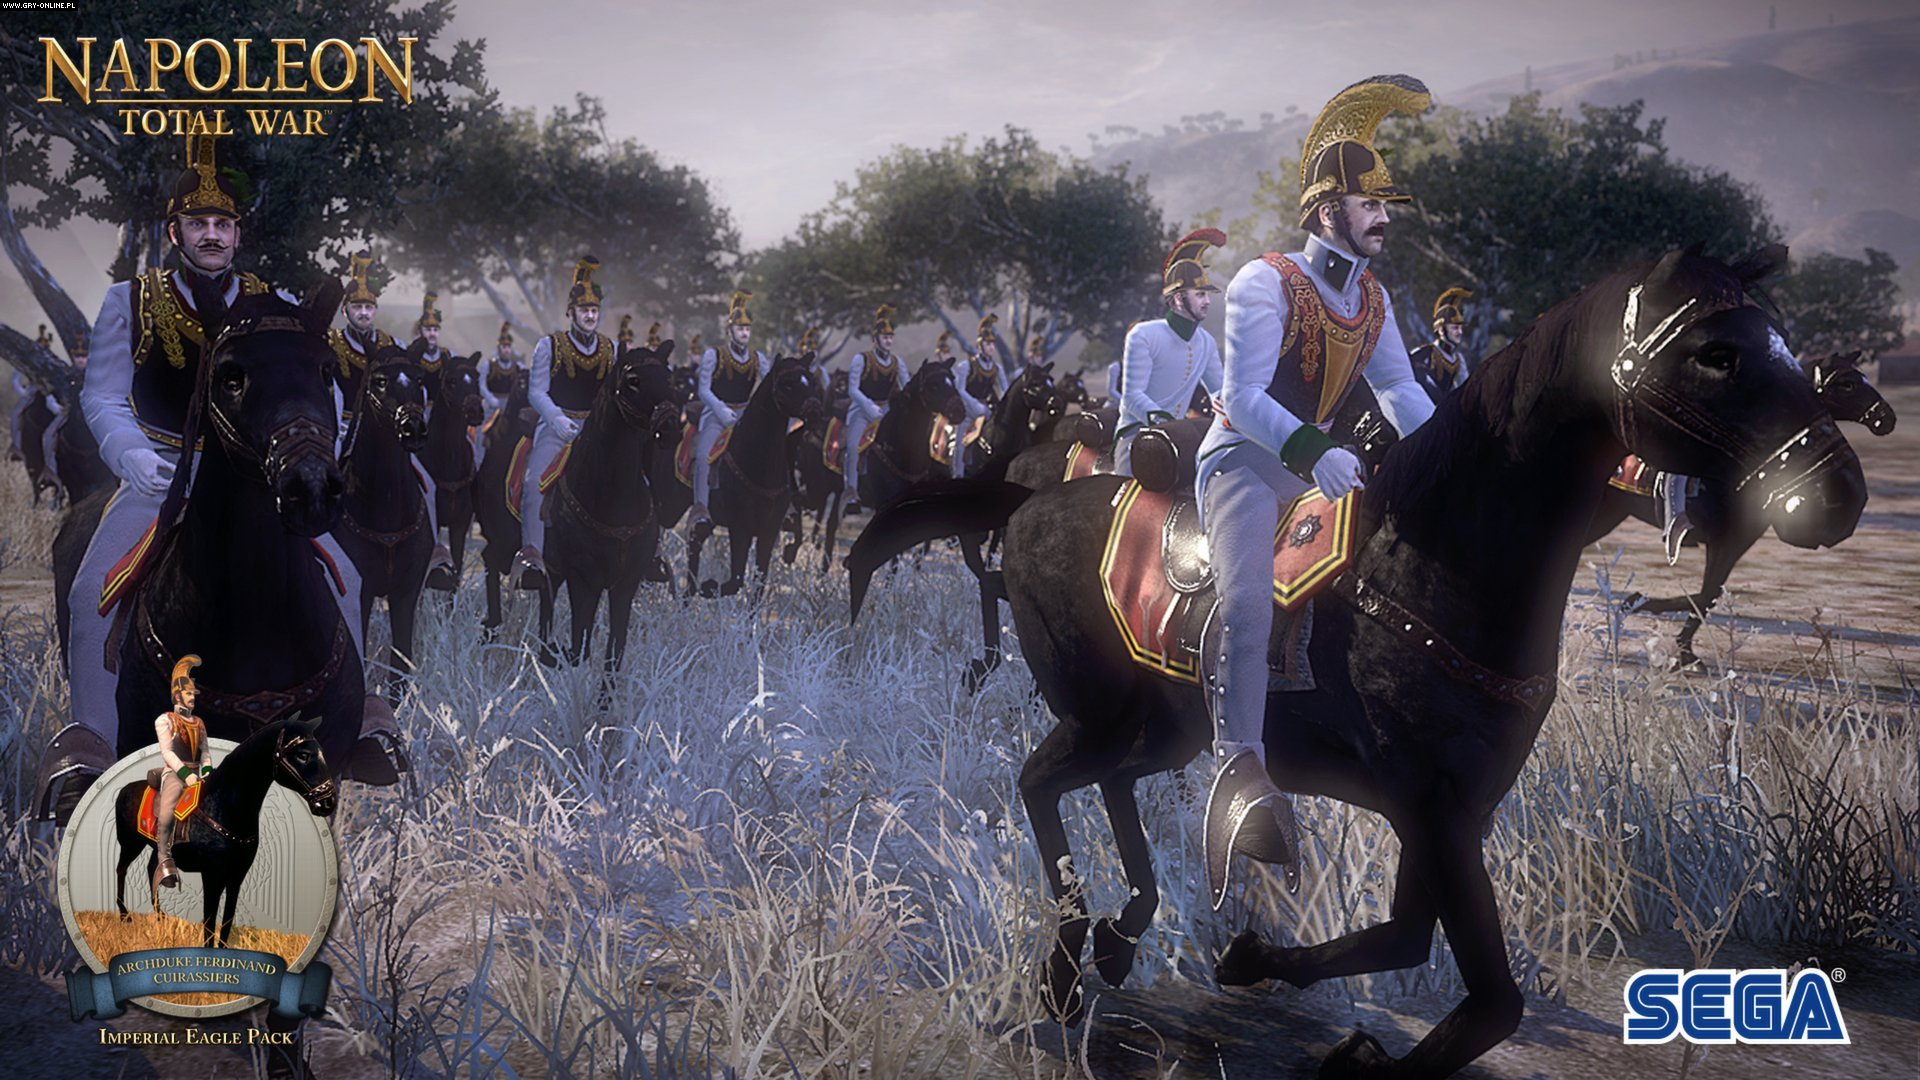 Napoleon: Total War PC Gry Screen 7/100, Creative Assembly, SEGA